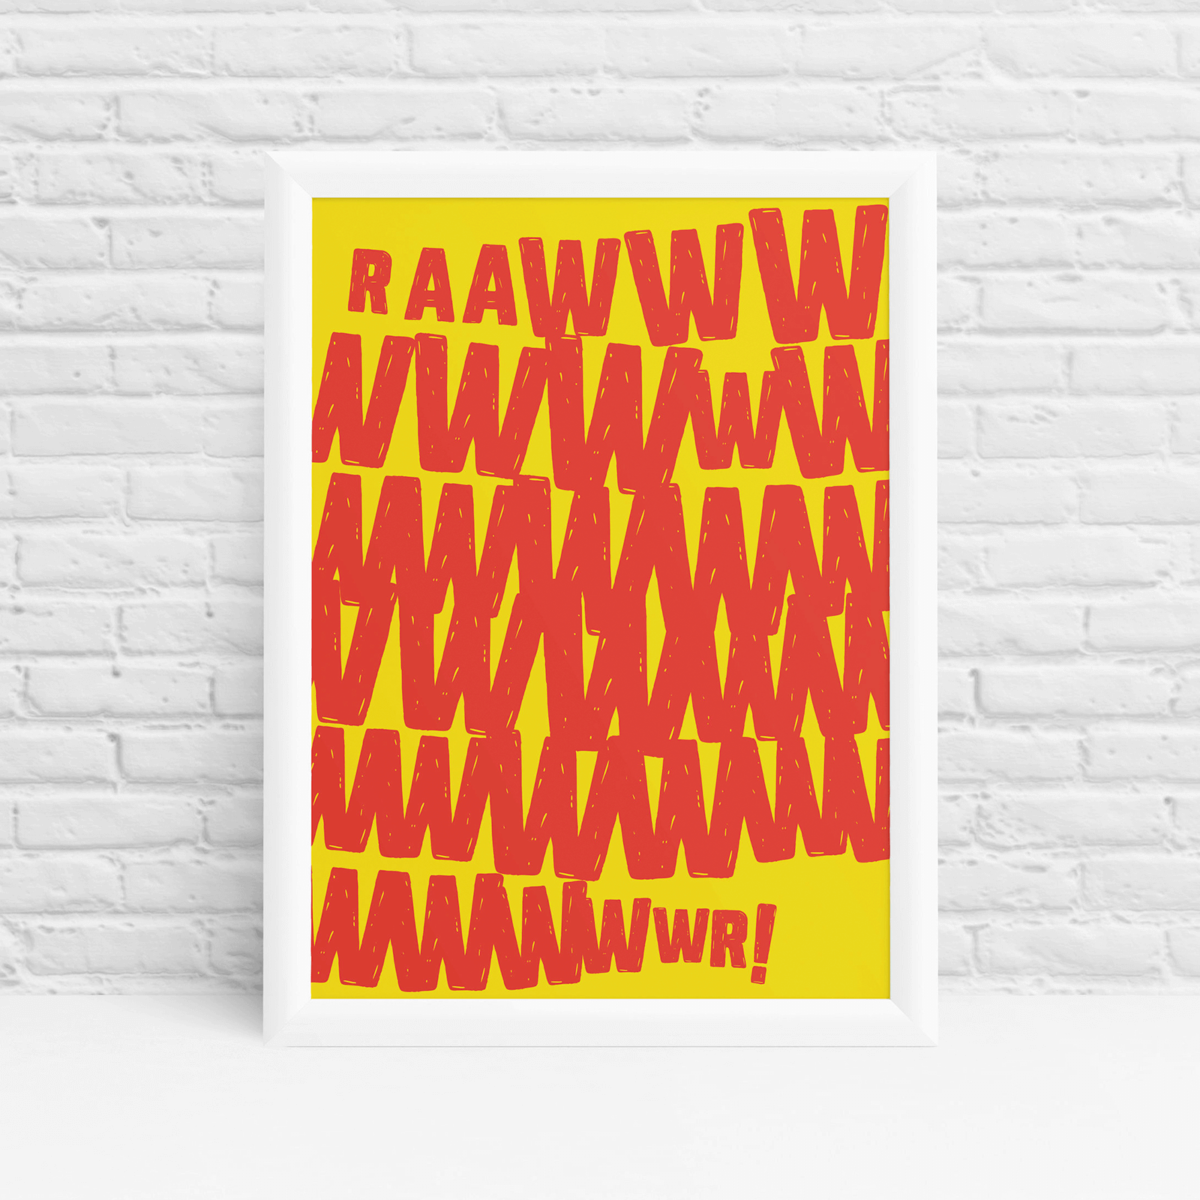 Colourful kids monster rawr playroom wall art by Ibbleobble®